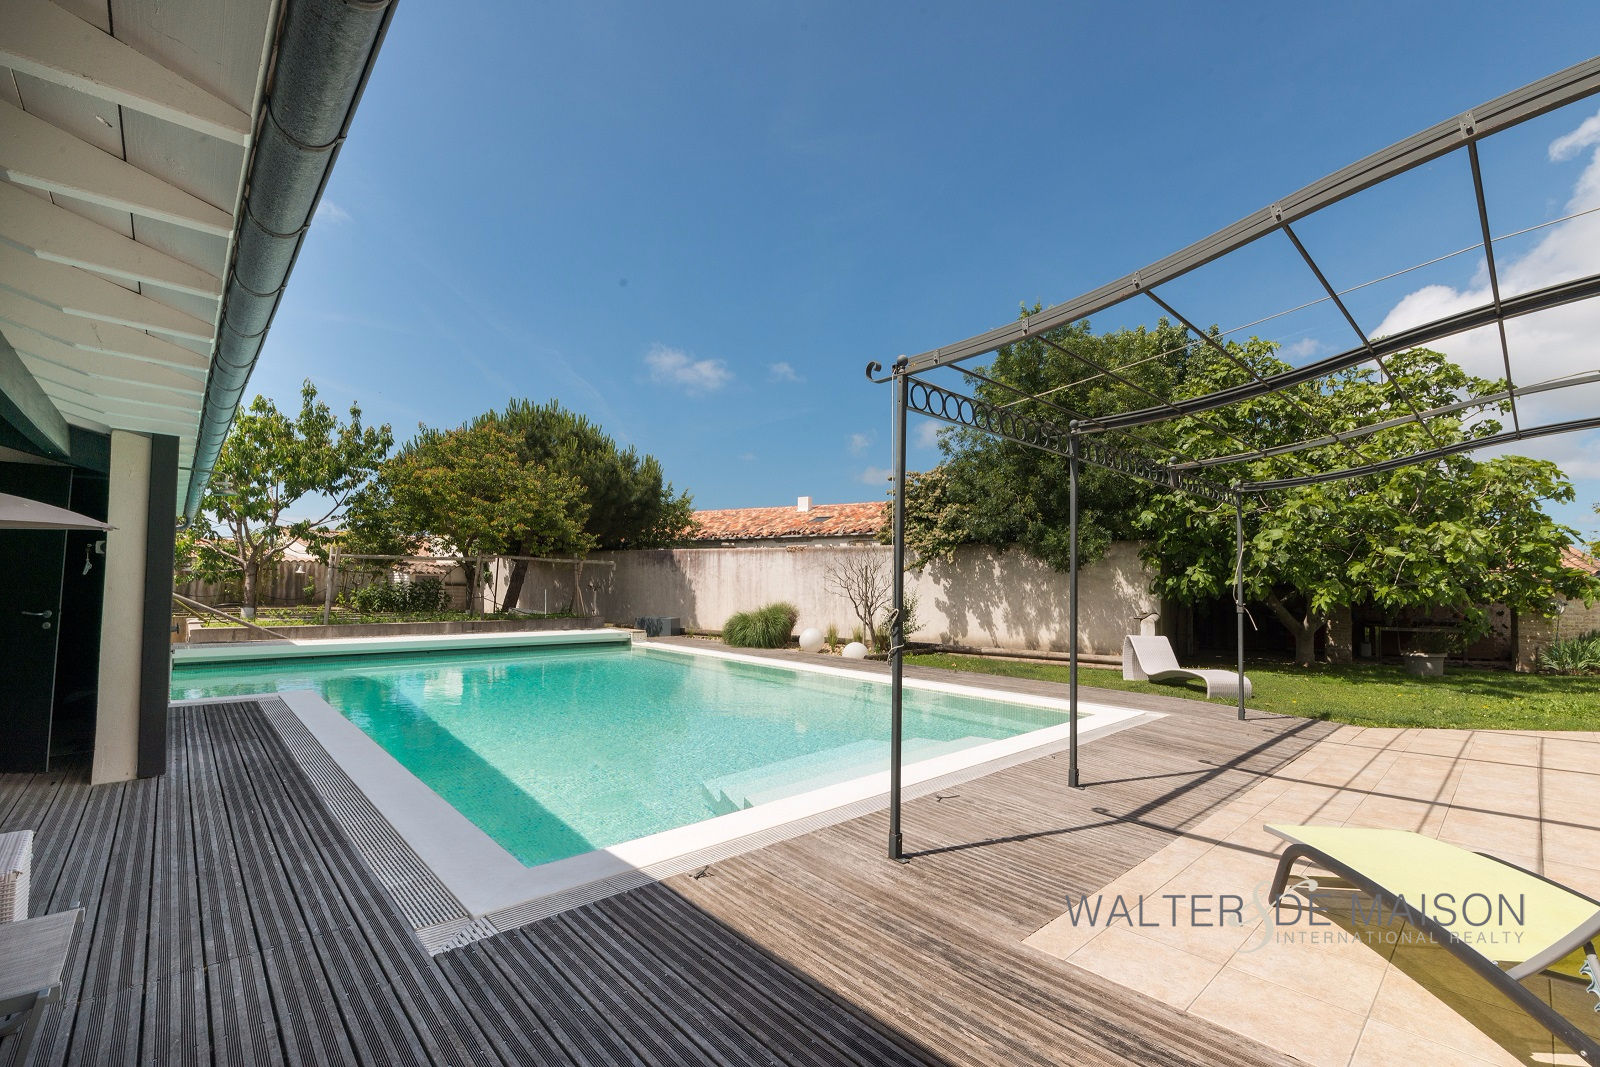 Photo Maison Saint-Martin-de-Ré 10 pièces - 445 m² - 5 chambres -  Piscine-Pool-house 1500 m² image 3/6